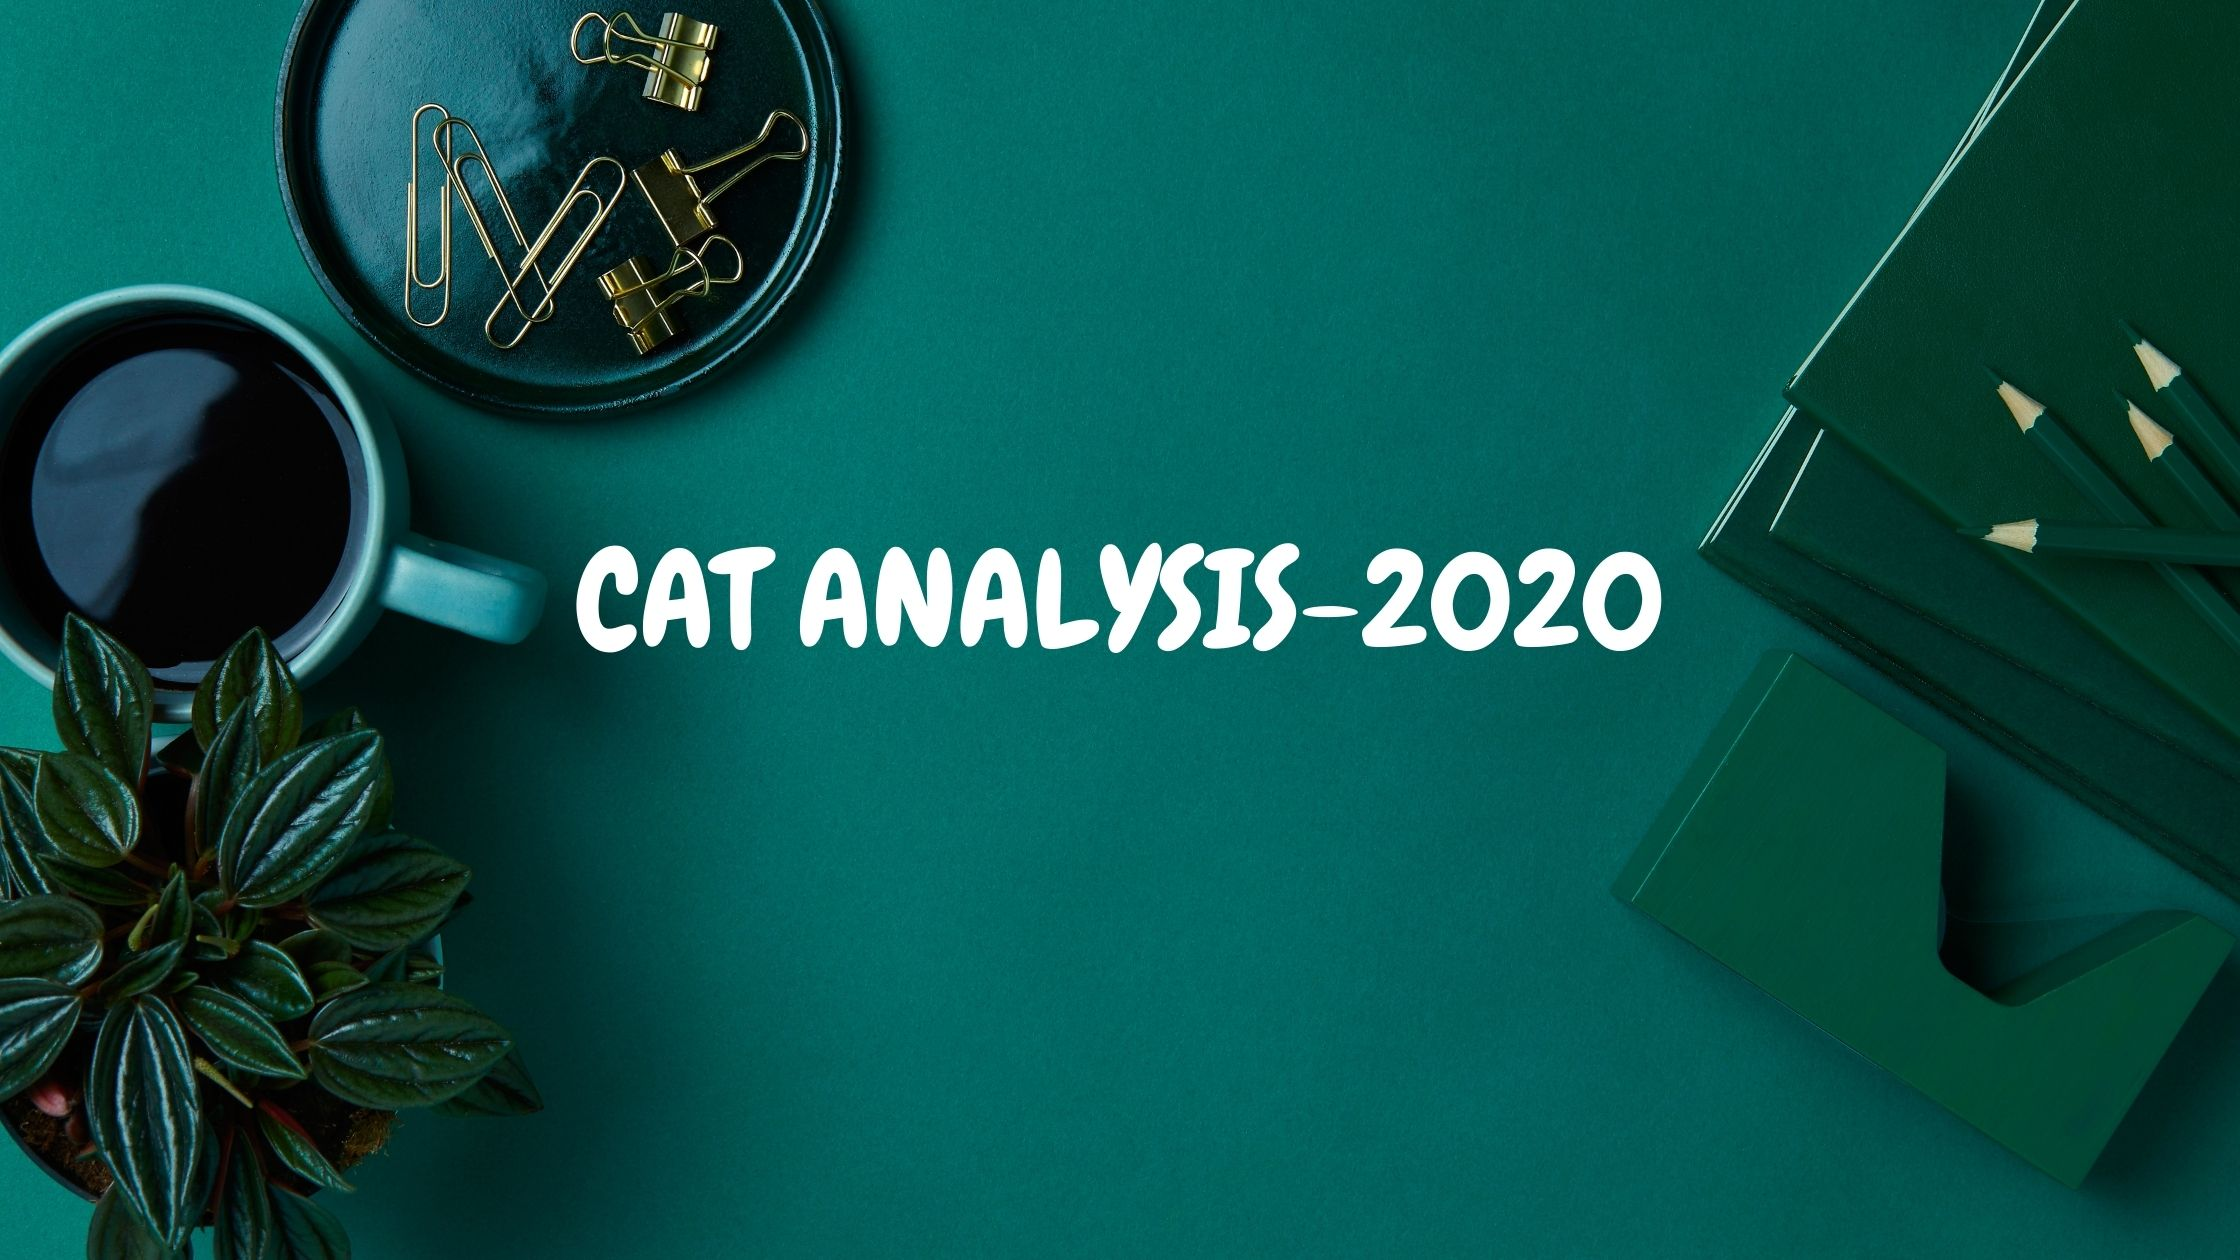 CAT Analysis 2020: Brief Overview & Paper Analysis